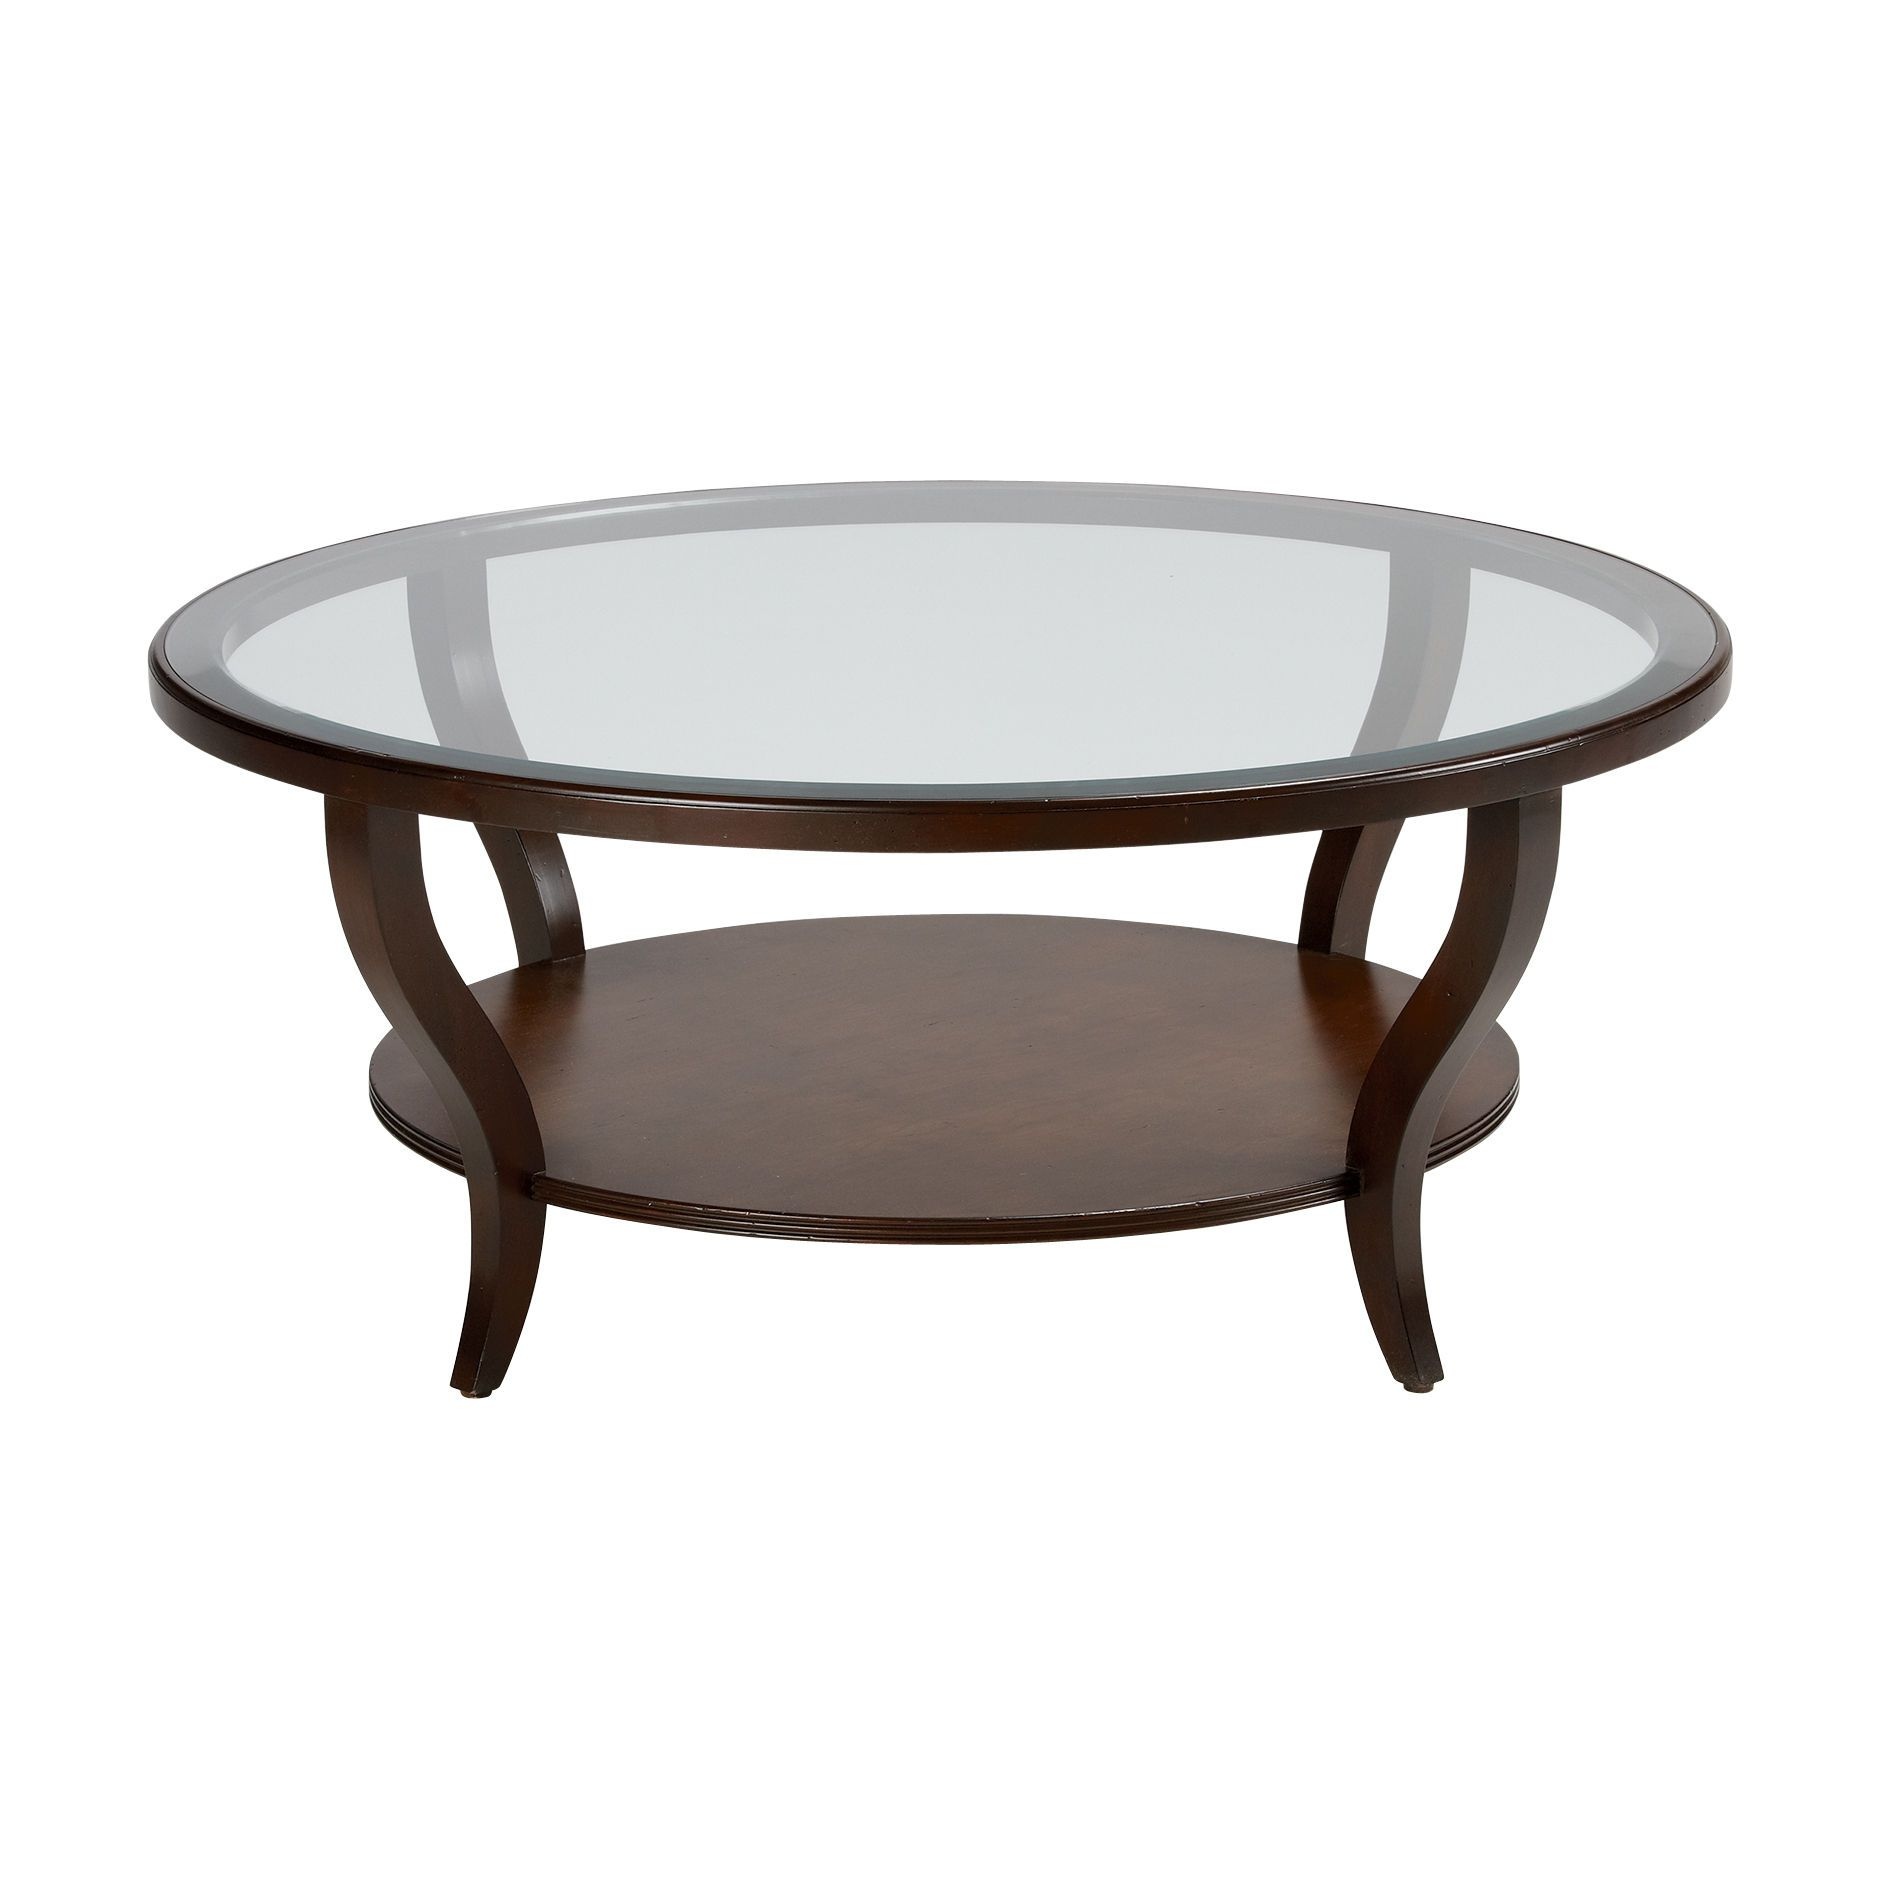 Ethan Allen Tuscan Coffee Table: Cirque Coffee Table - Ethan Allen US$1099 44""